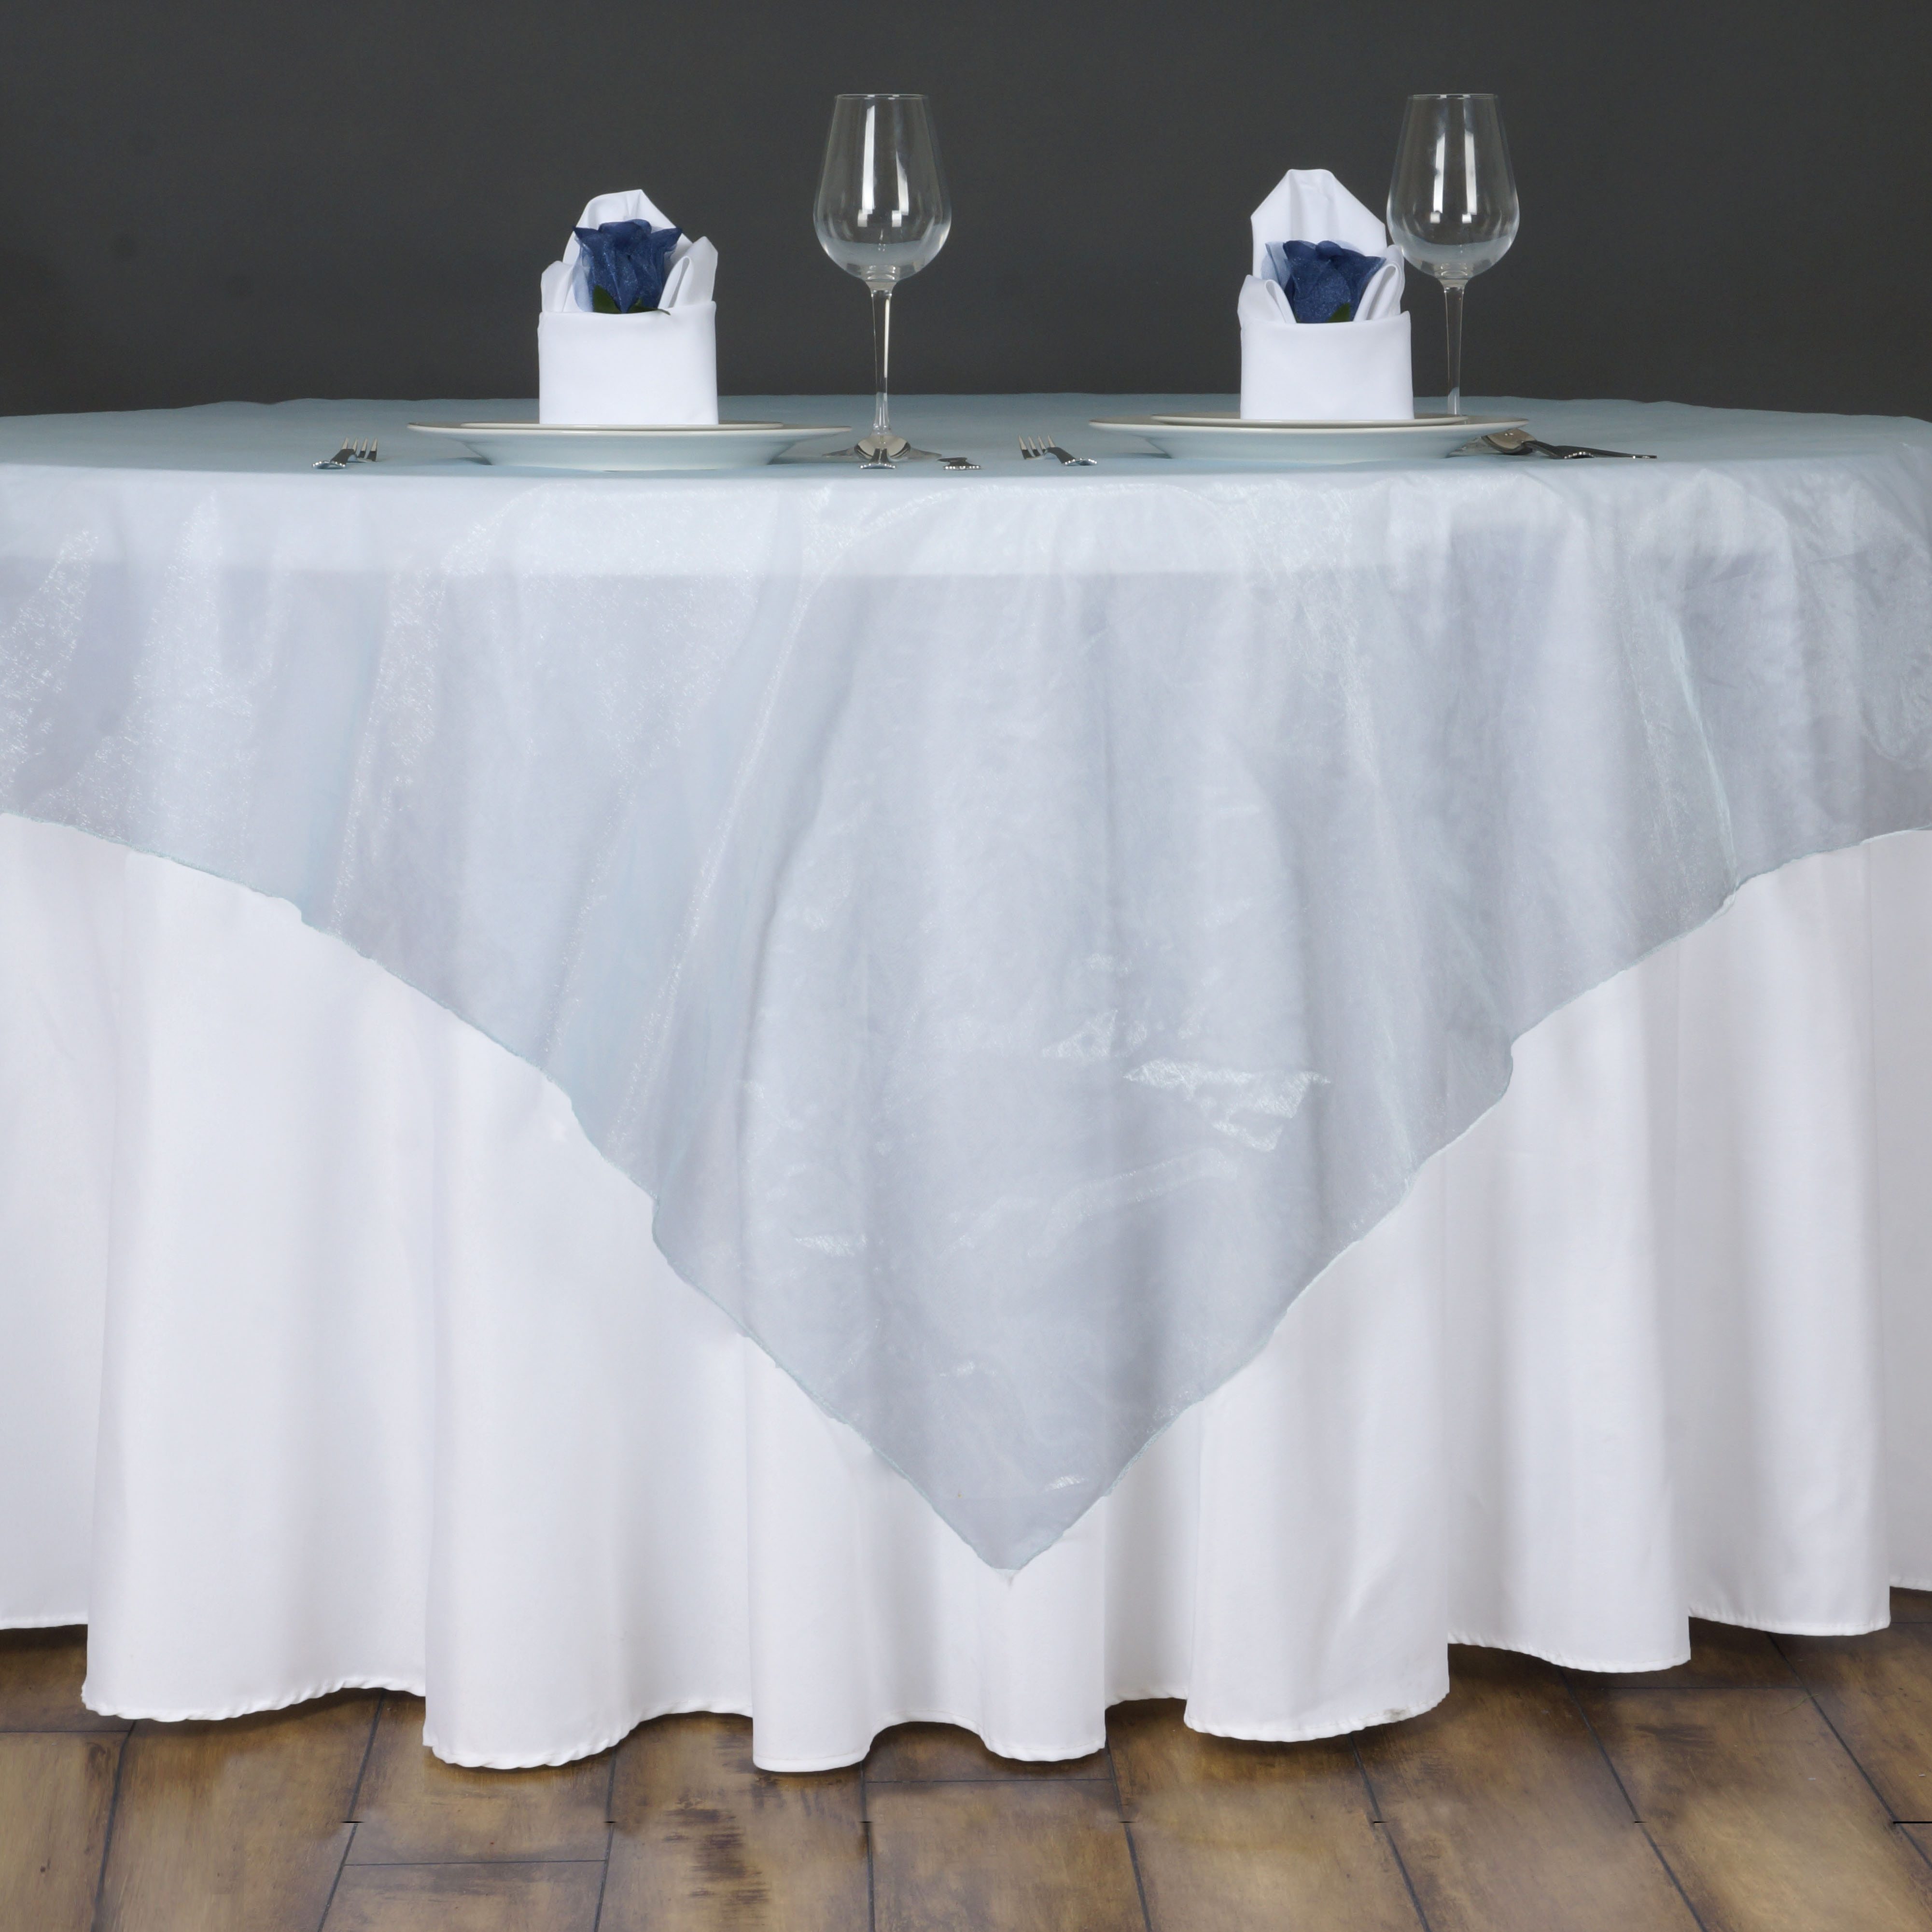 6 x sheer organza 60x60 square table overlays toppers wedding party linens sale ebay. Black Bedroom Furniture Sets. Home Design Ideas